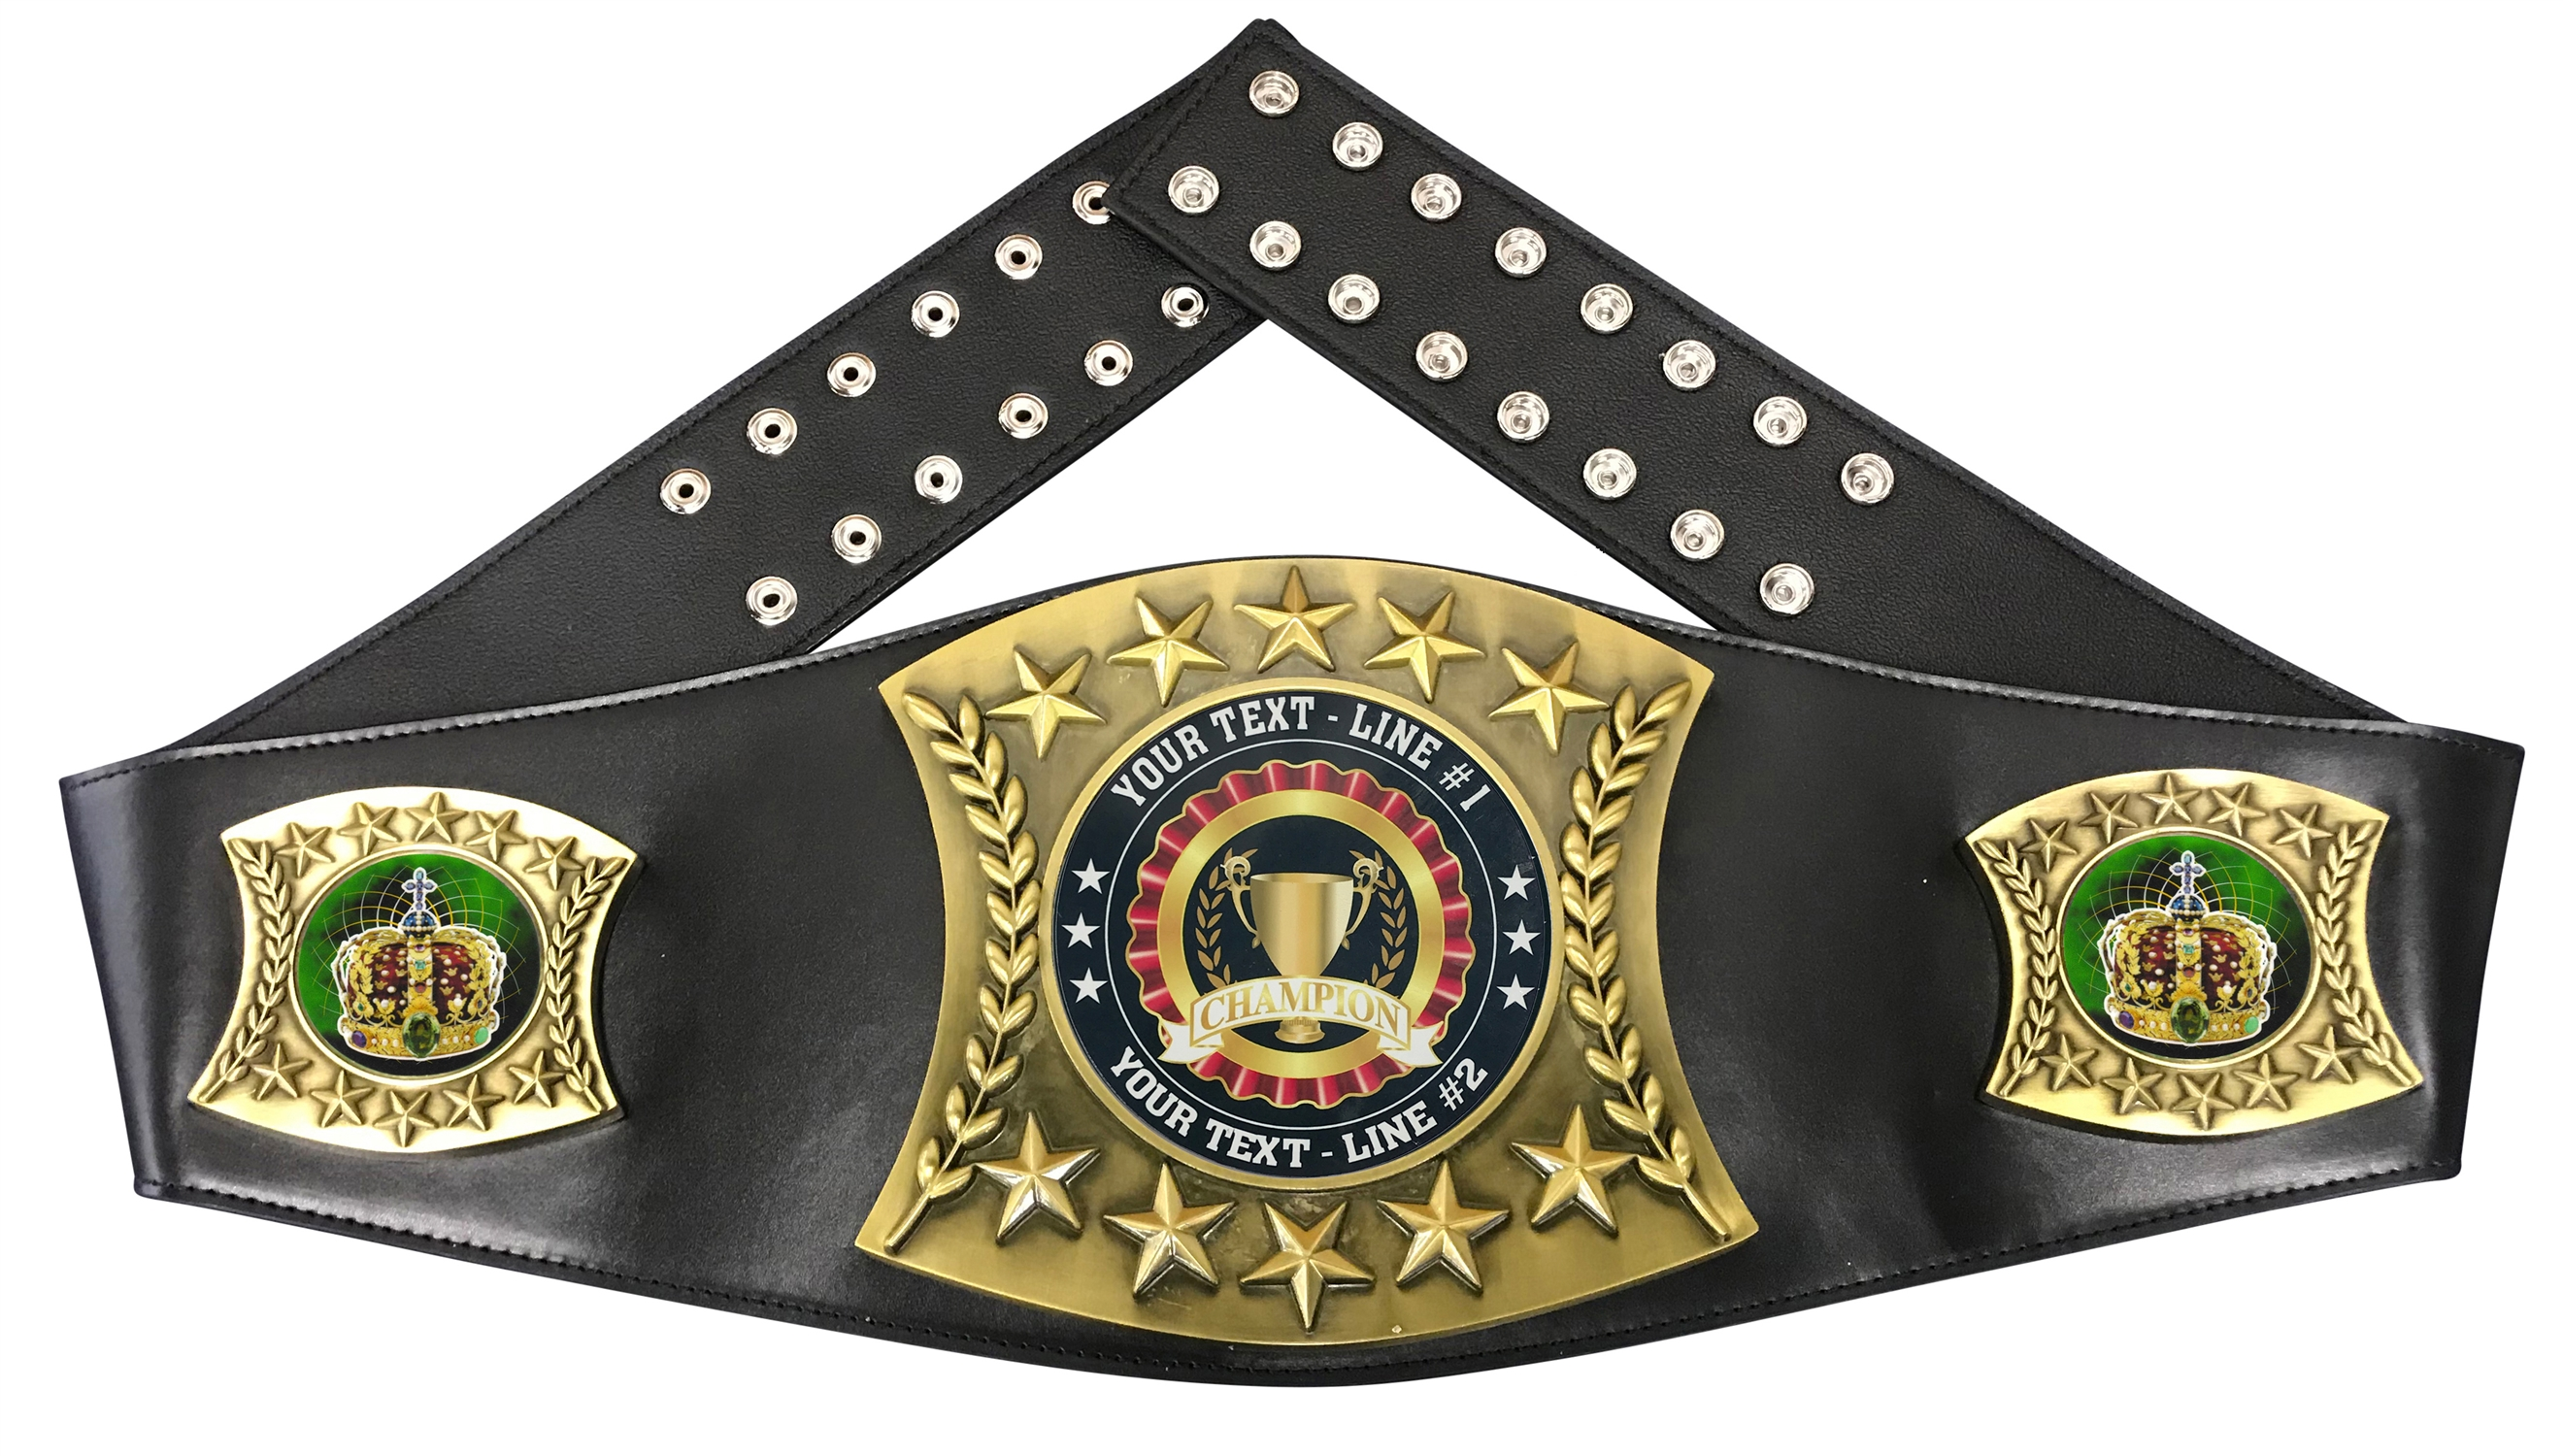 Home Coming King Personalized Championship Belt